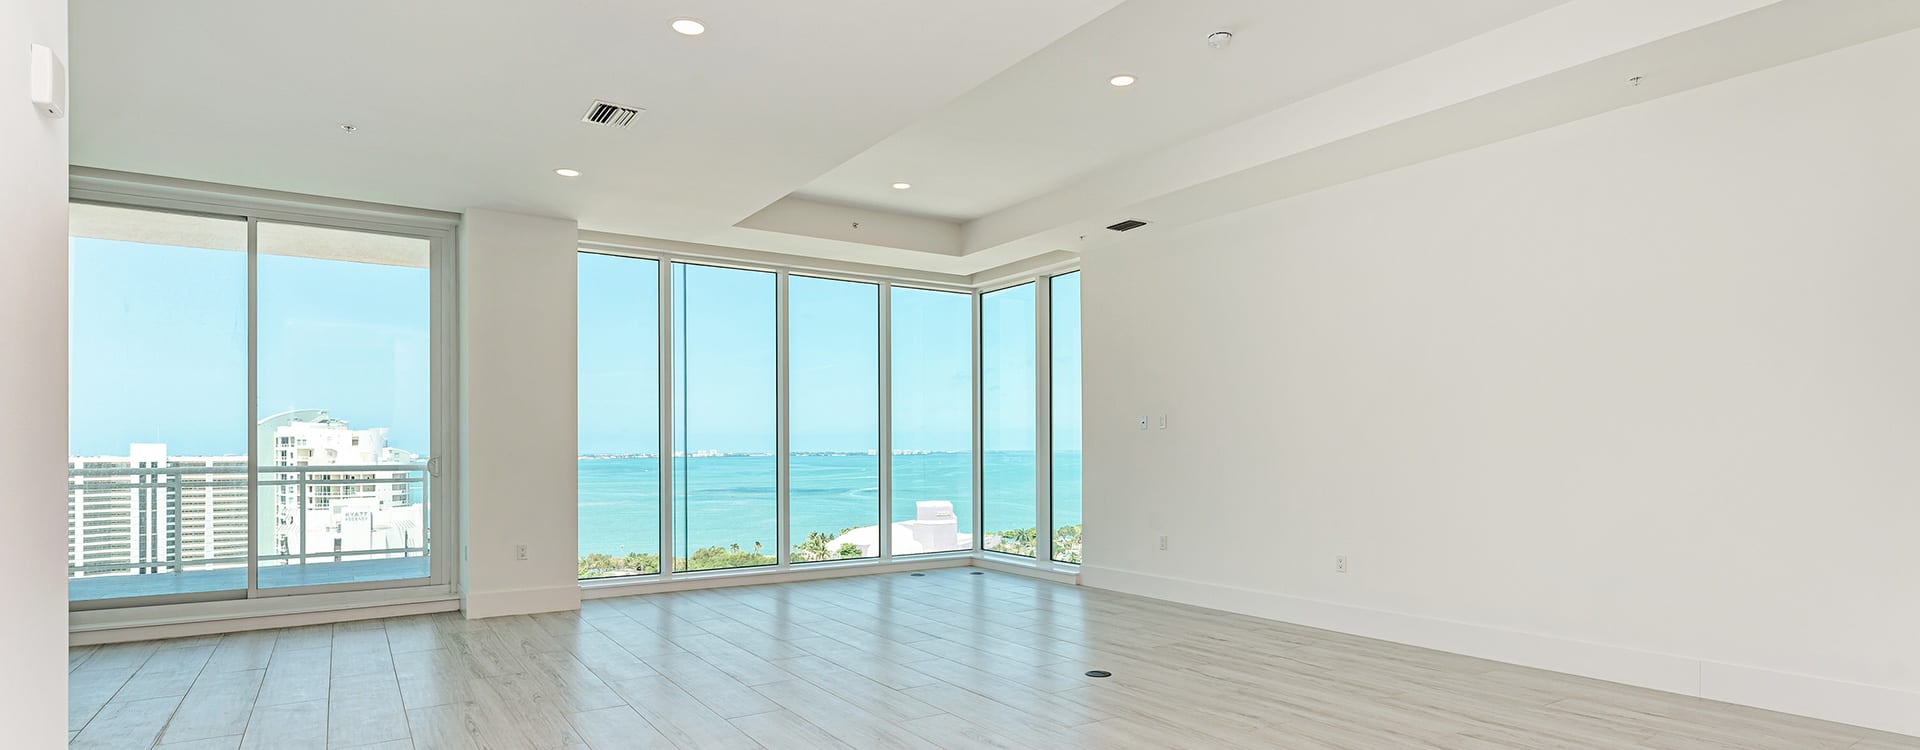 BLVD Sarasota Residence 1603 great room with view of the gulf of mexico